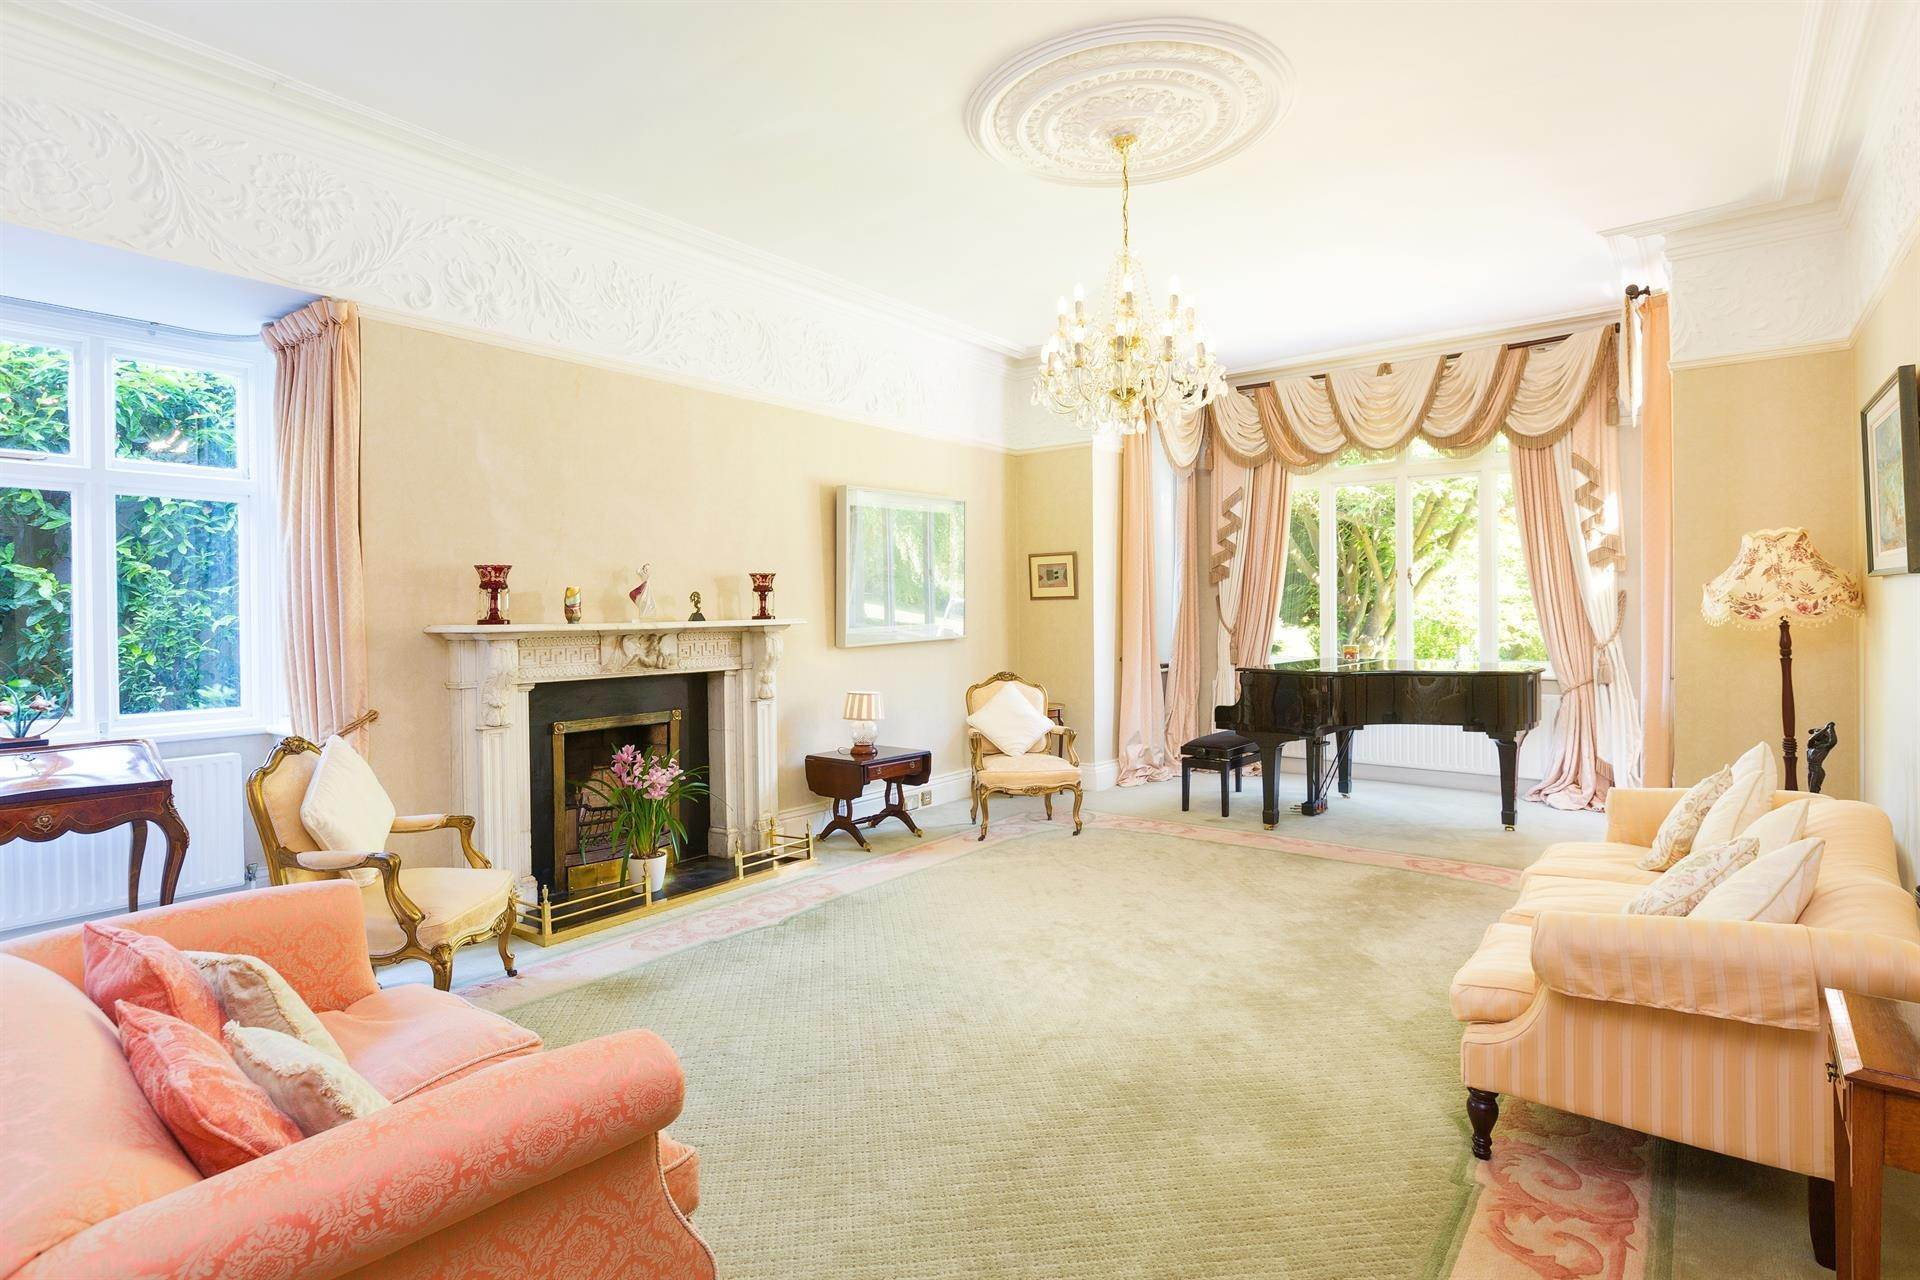 2. Single Family Home for Sale at Foxrock, Ireland